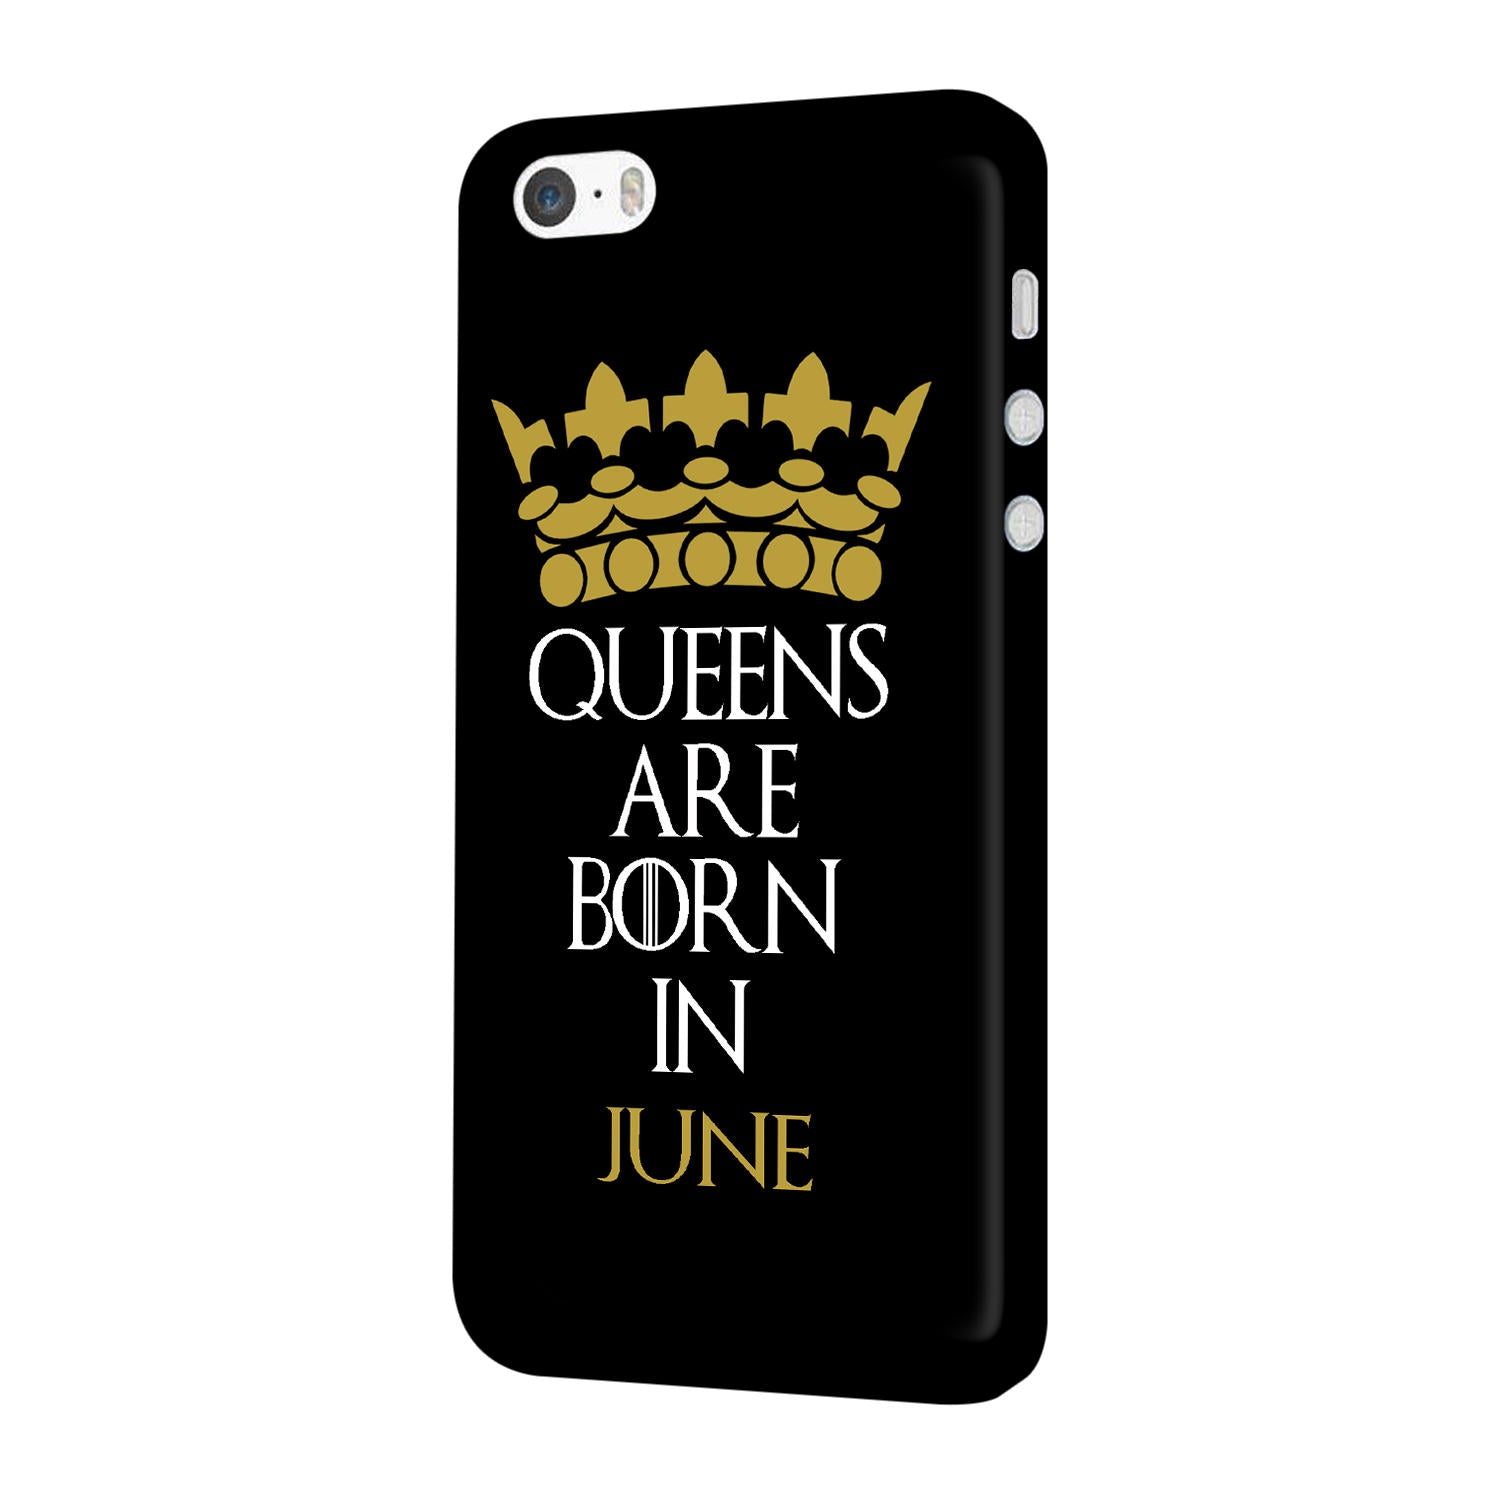 Queens June iPhone 5 Mobile Cover Case - MADANYU